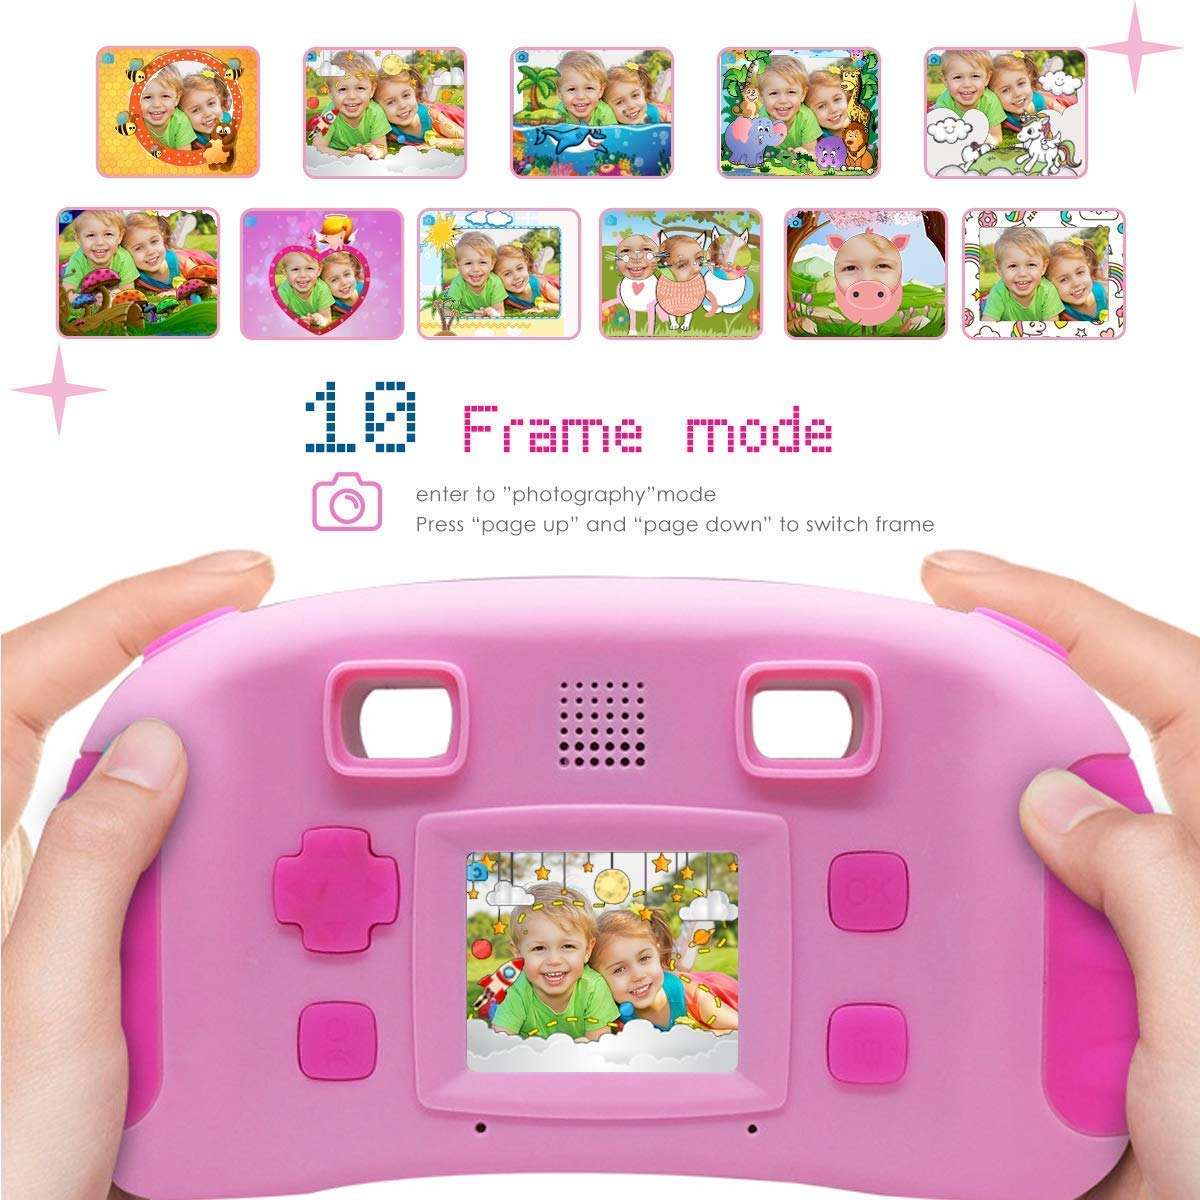 Vetté Digital Camera for Kids with 16GB MicroSD Card - Multifunctional Kids Camera - 2X Zoom, 720 HD Video Quality, 1.8 TFT LCD Screen,Games, Frames, Photo Editing and Voice Recorder Camera (Pink) by Vetté (Image #5)